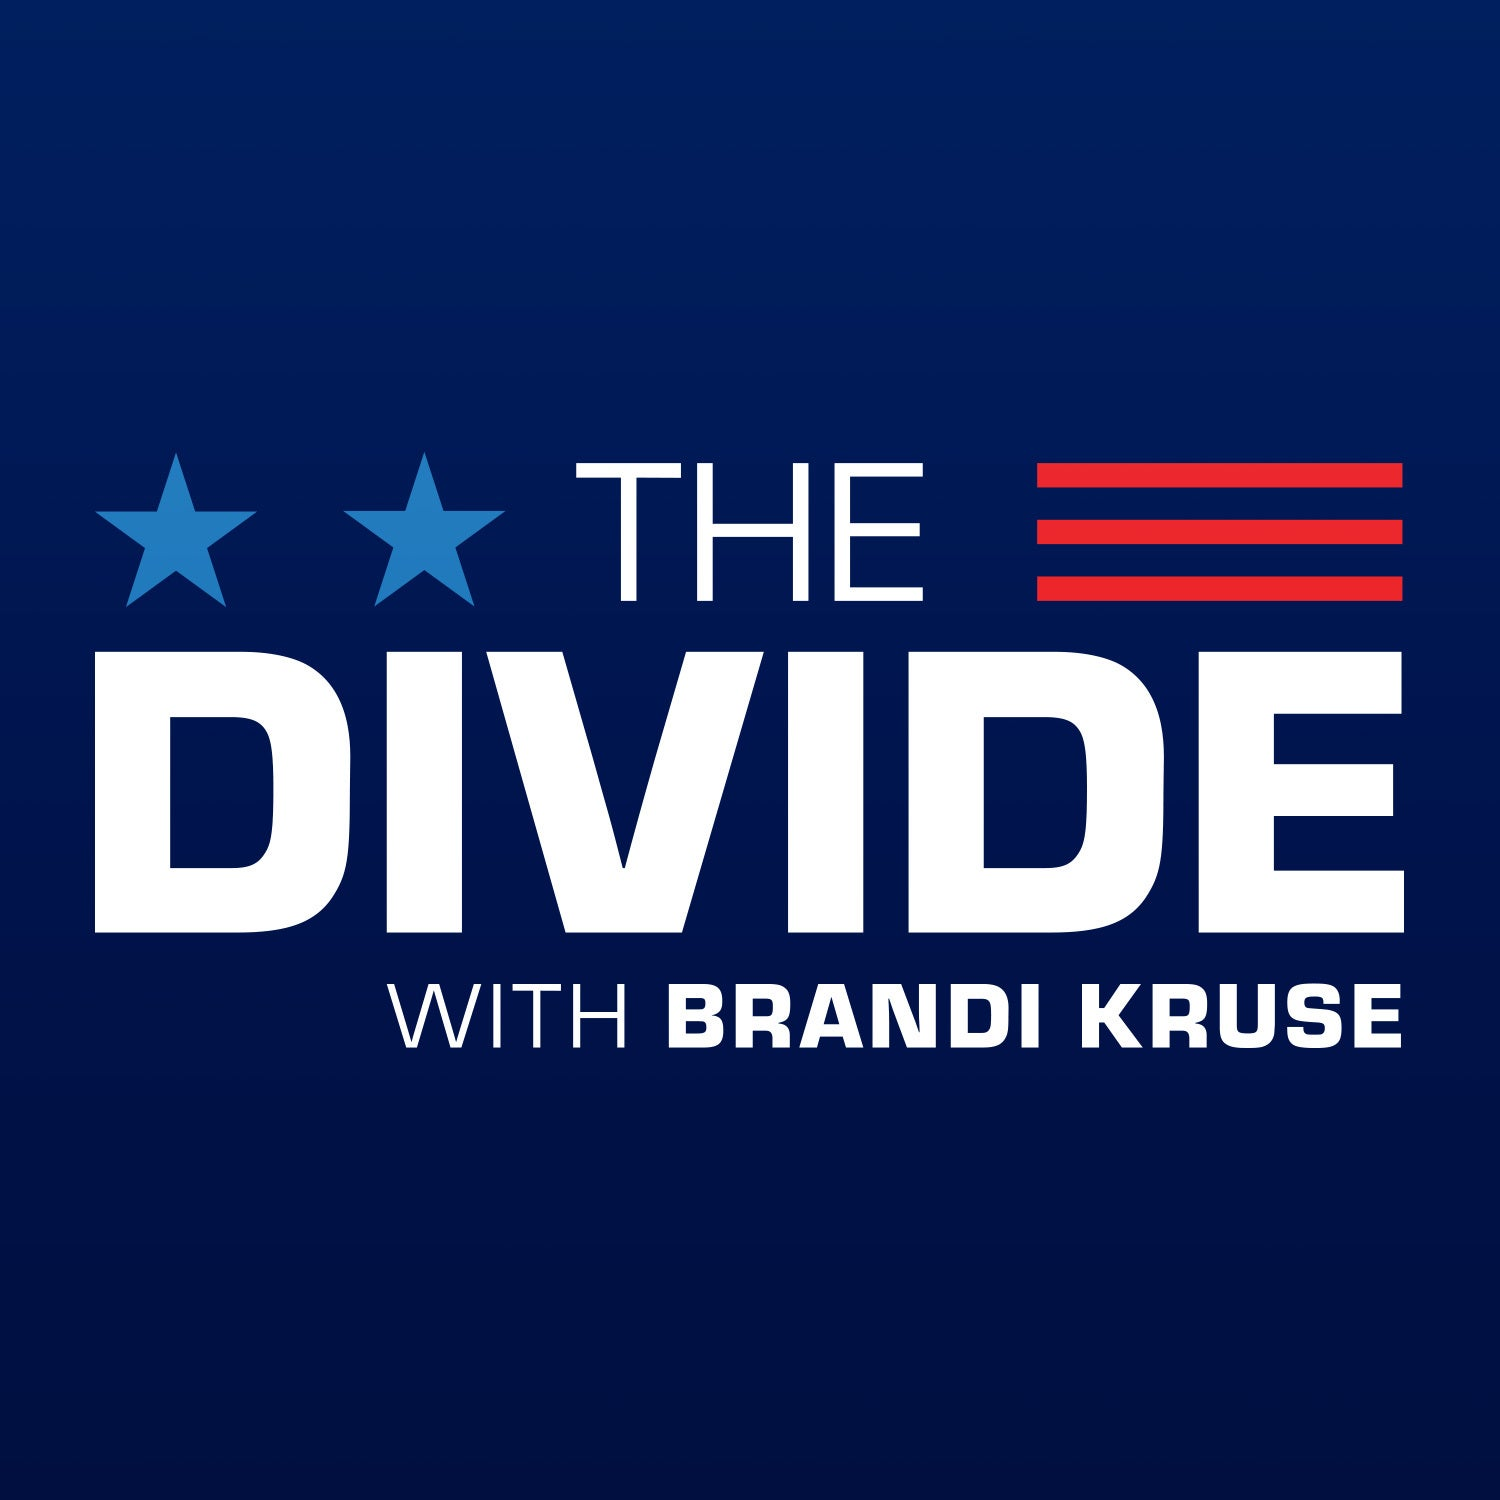 PODCAST: Listen to Extra Content from 'The Divide'